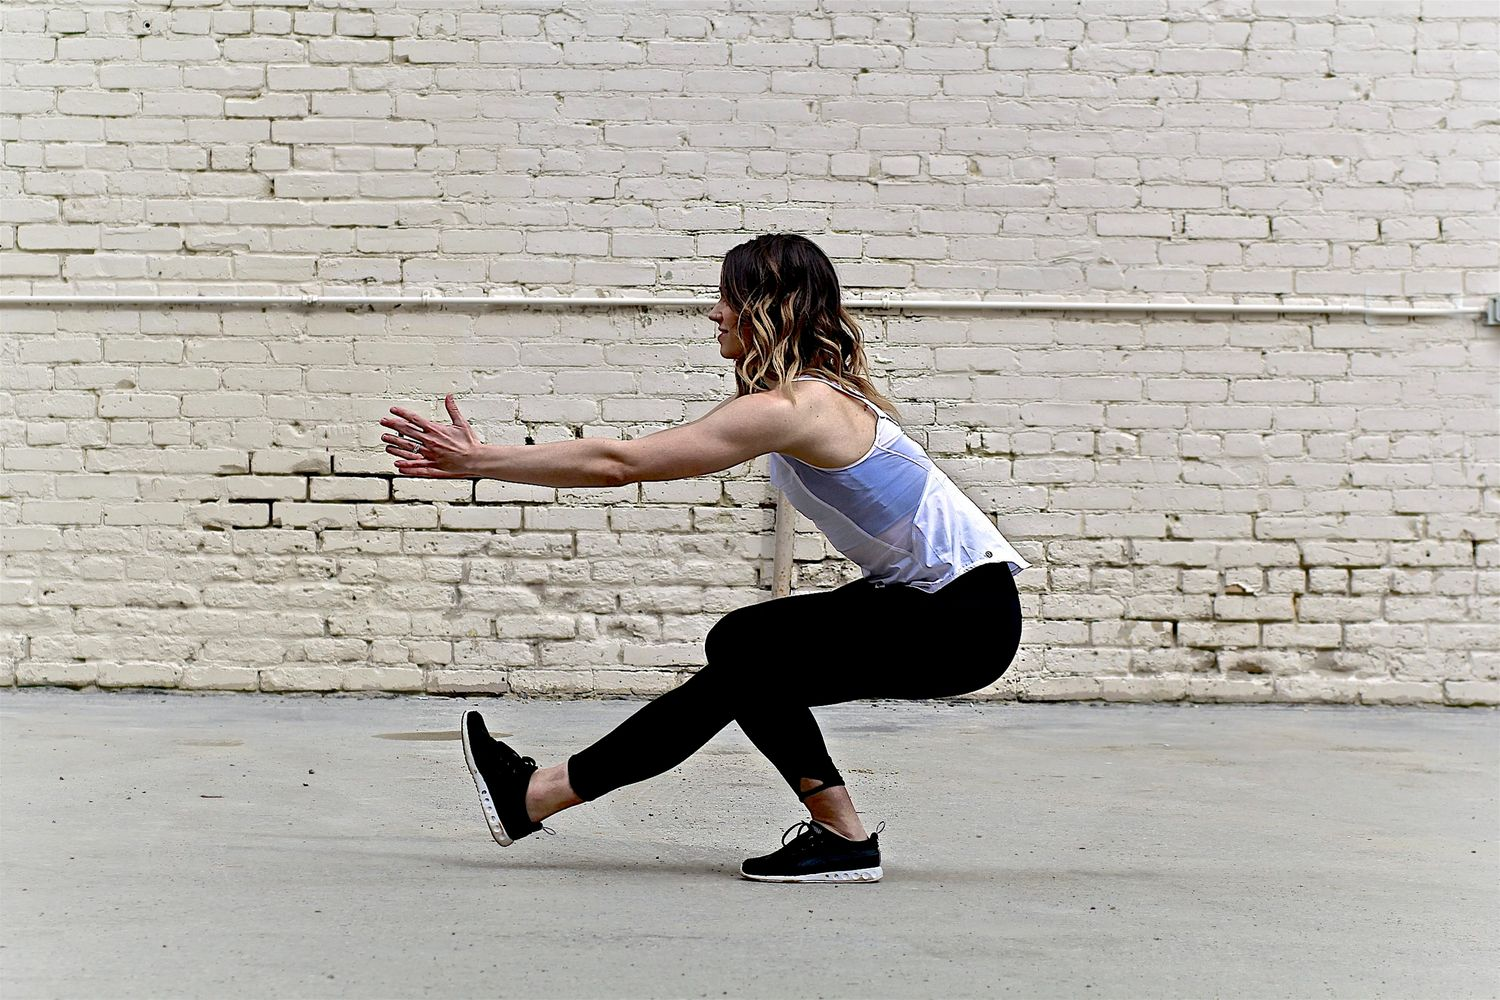 Saskatoon outdoor workouts, pistol squat, outdoor fitness, bodyweight workout.